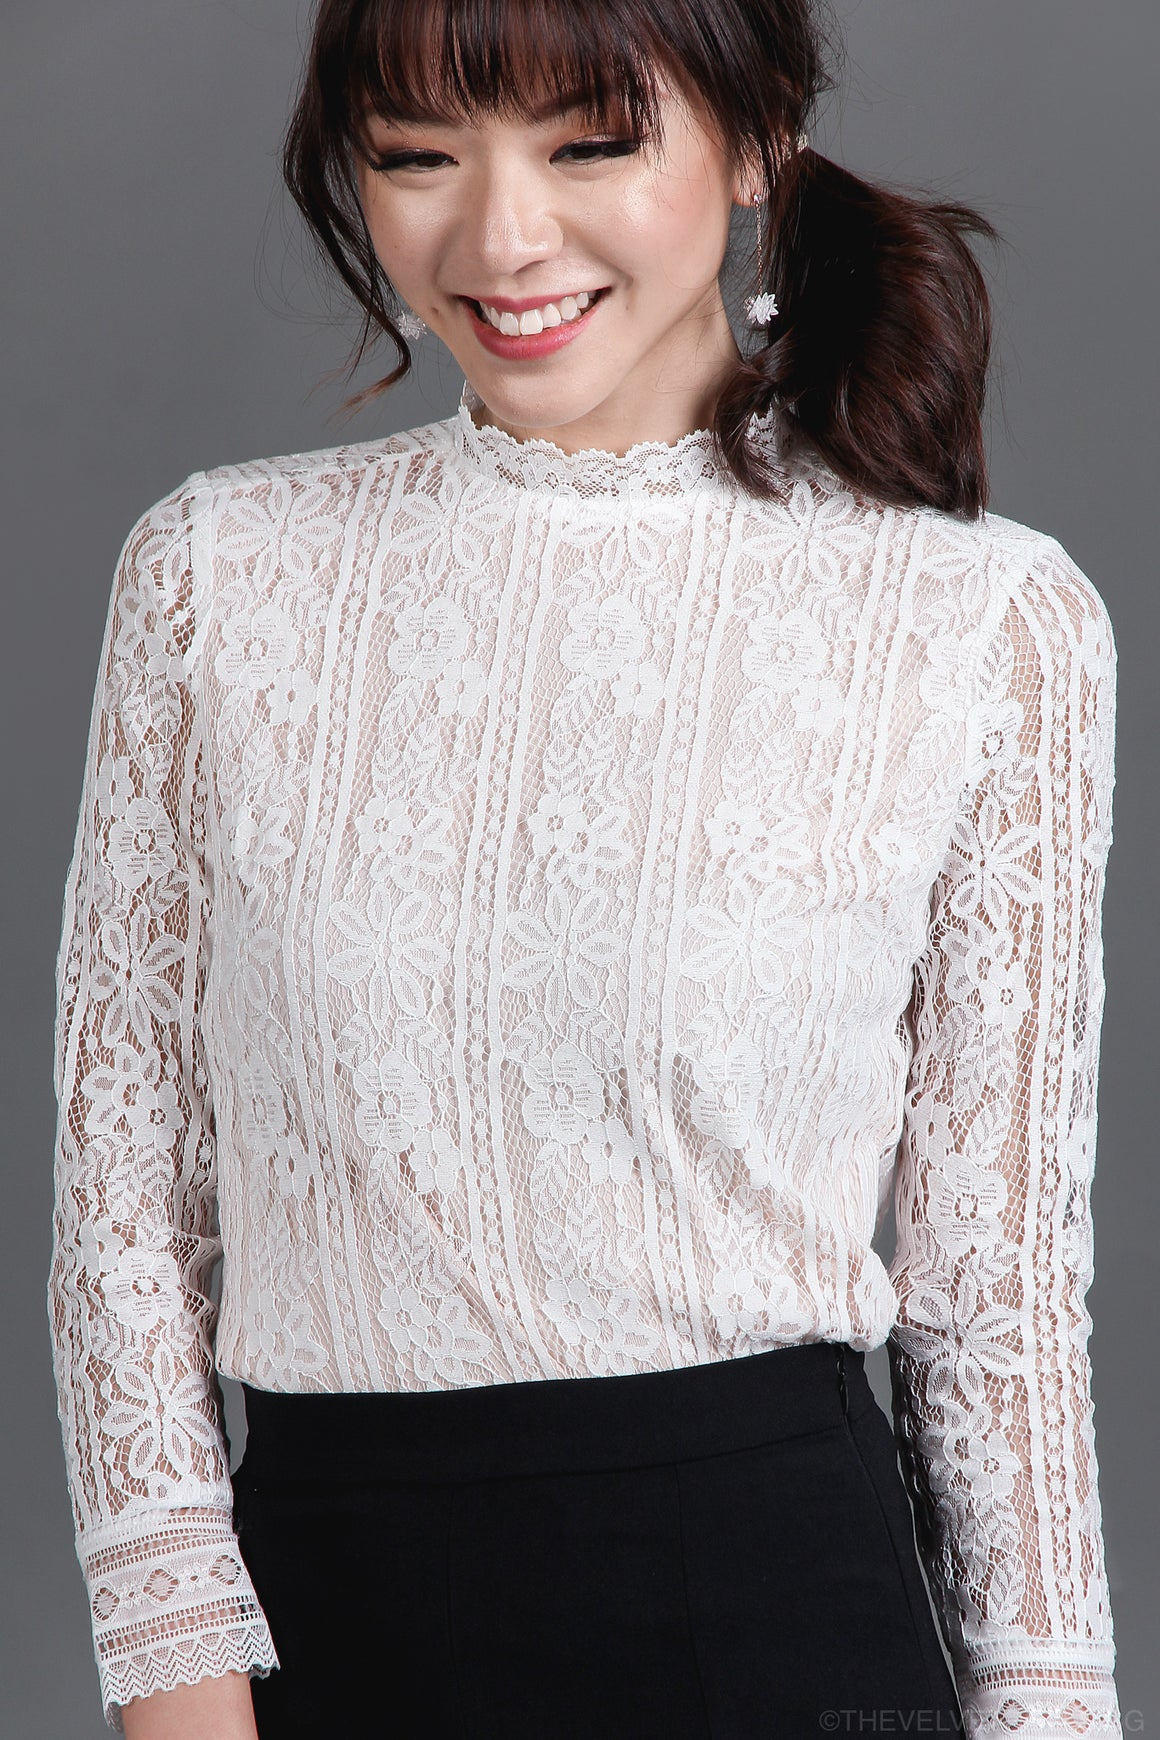 Pandora Lace Blouse in White